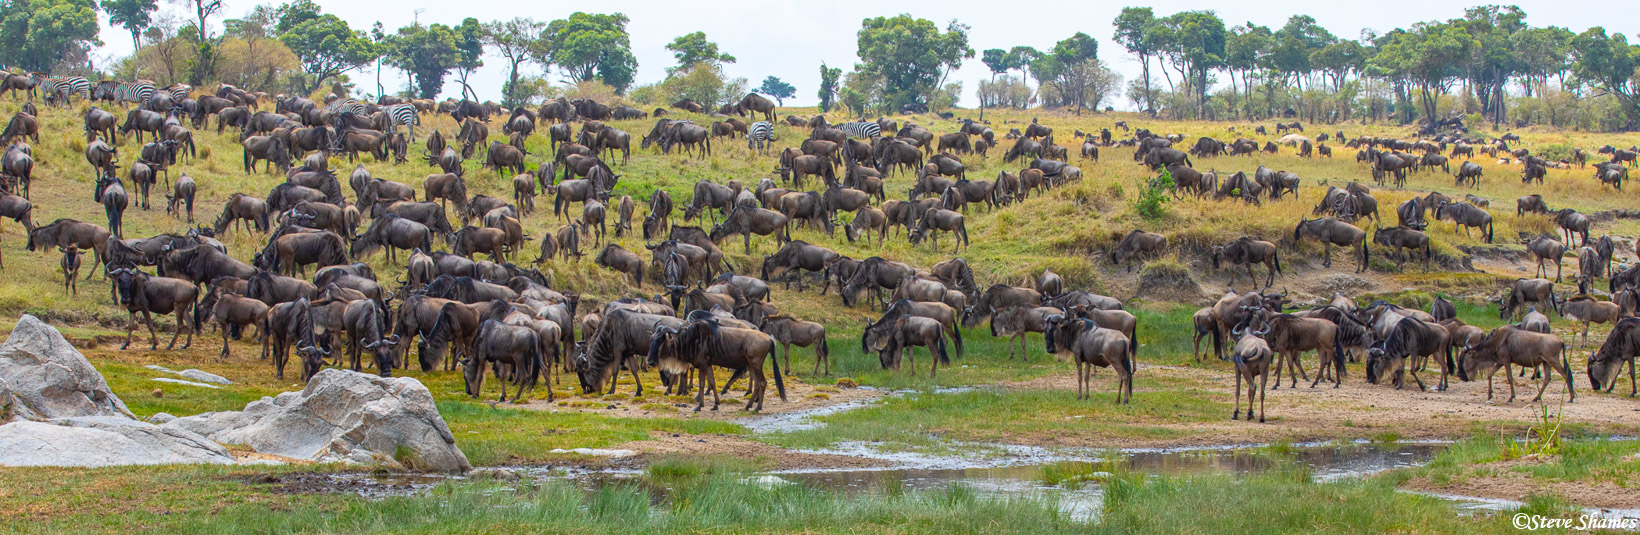 A hillside covered with a wildebeest herd.